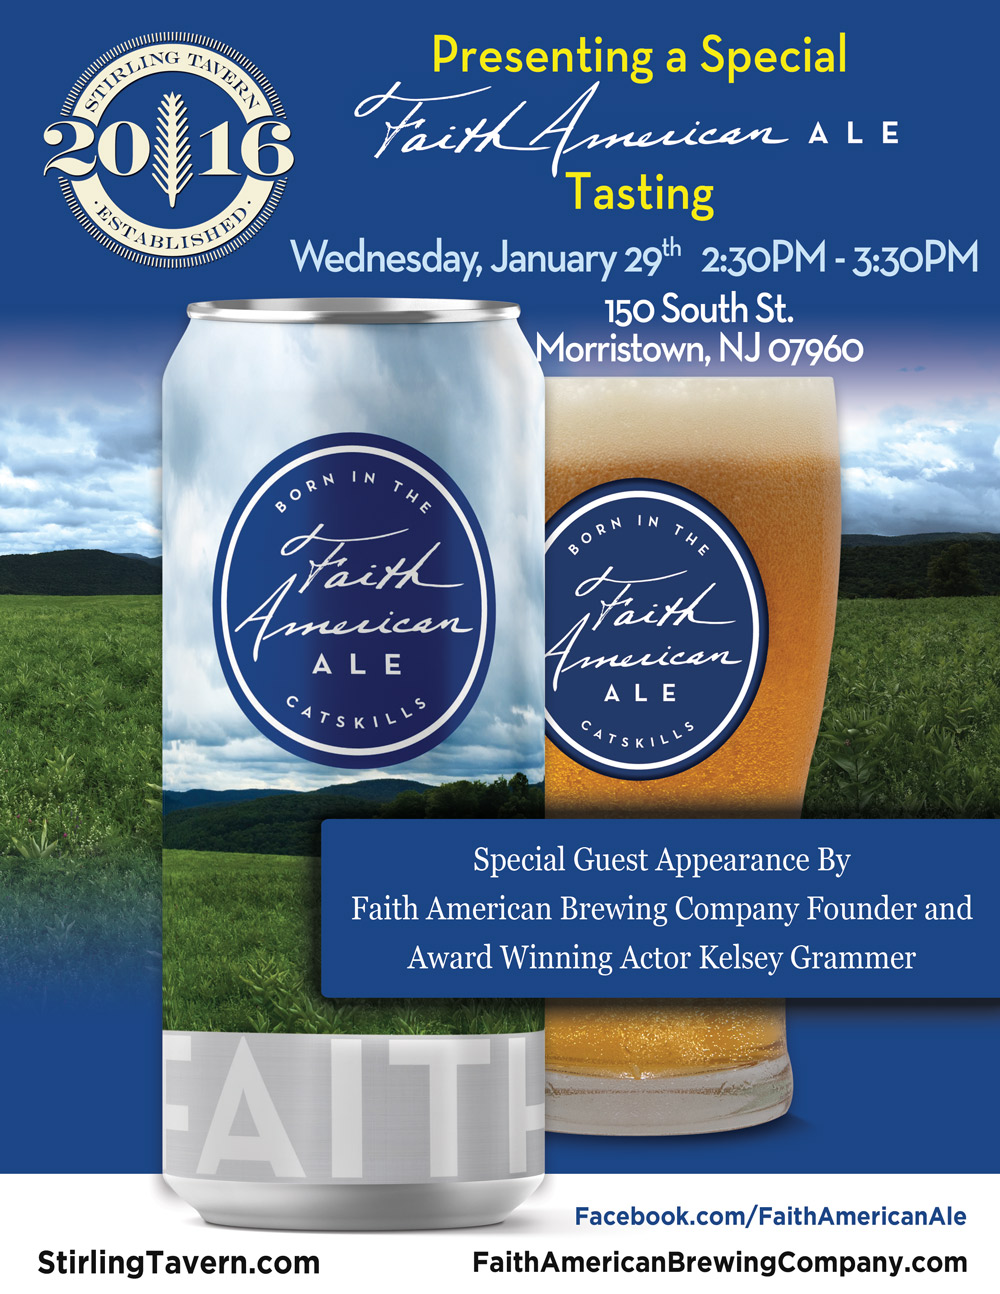 A Special Faith American Ale Tasting Event at Stirling Tavern